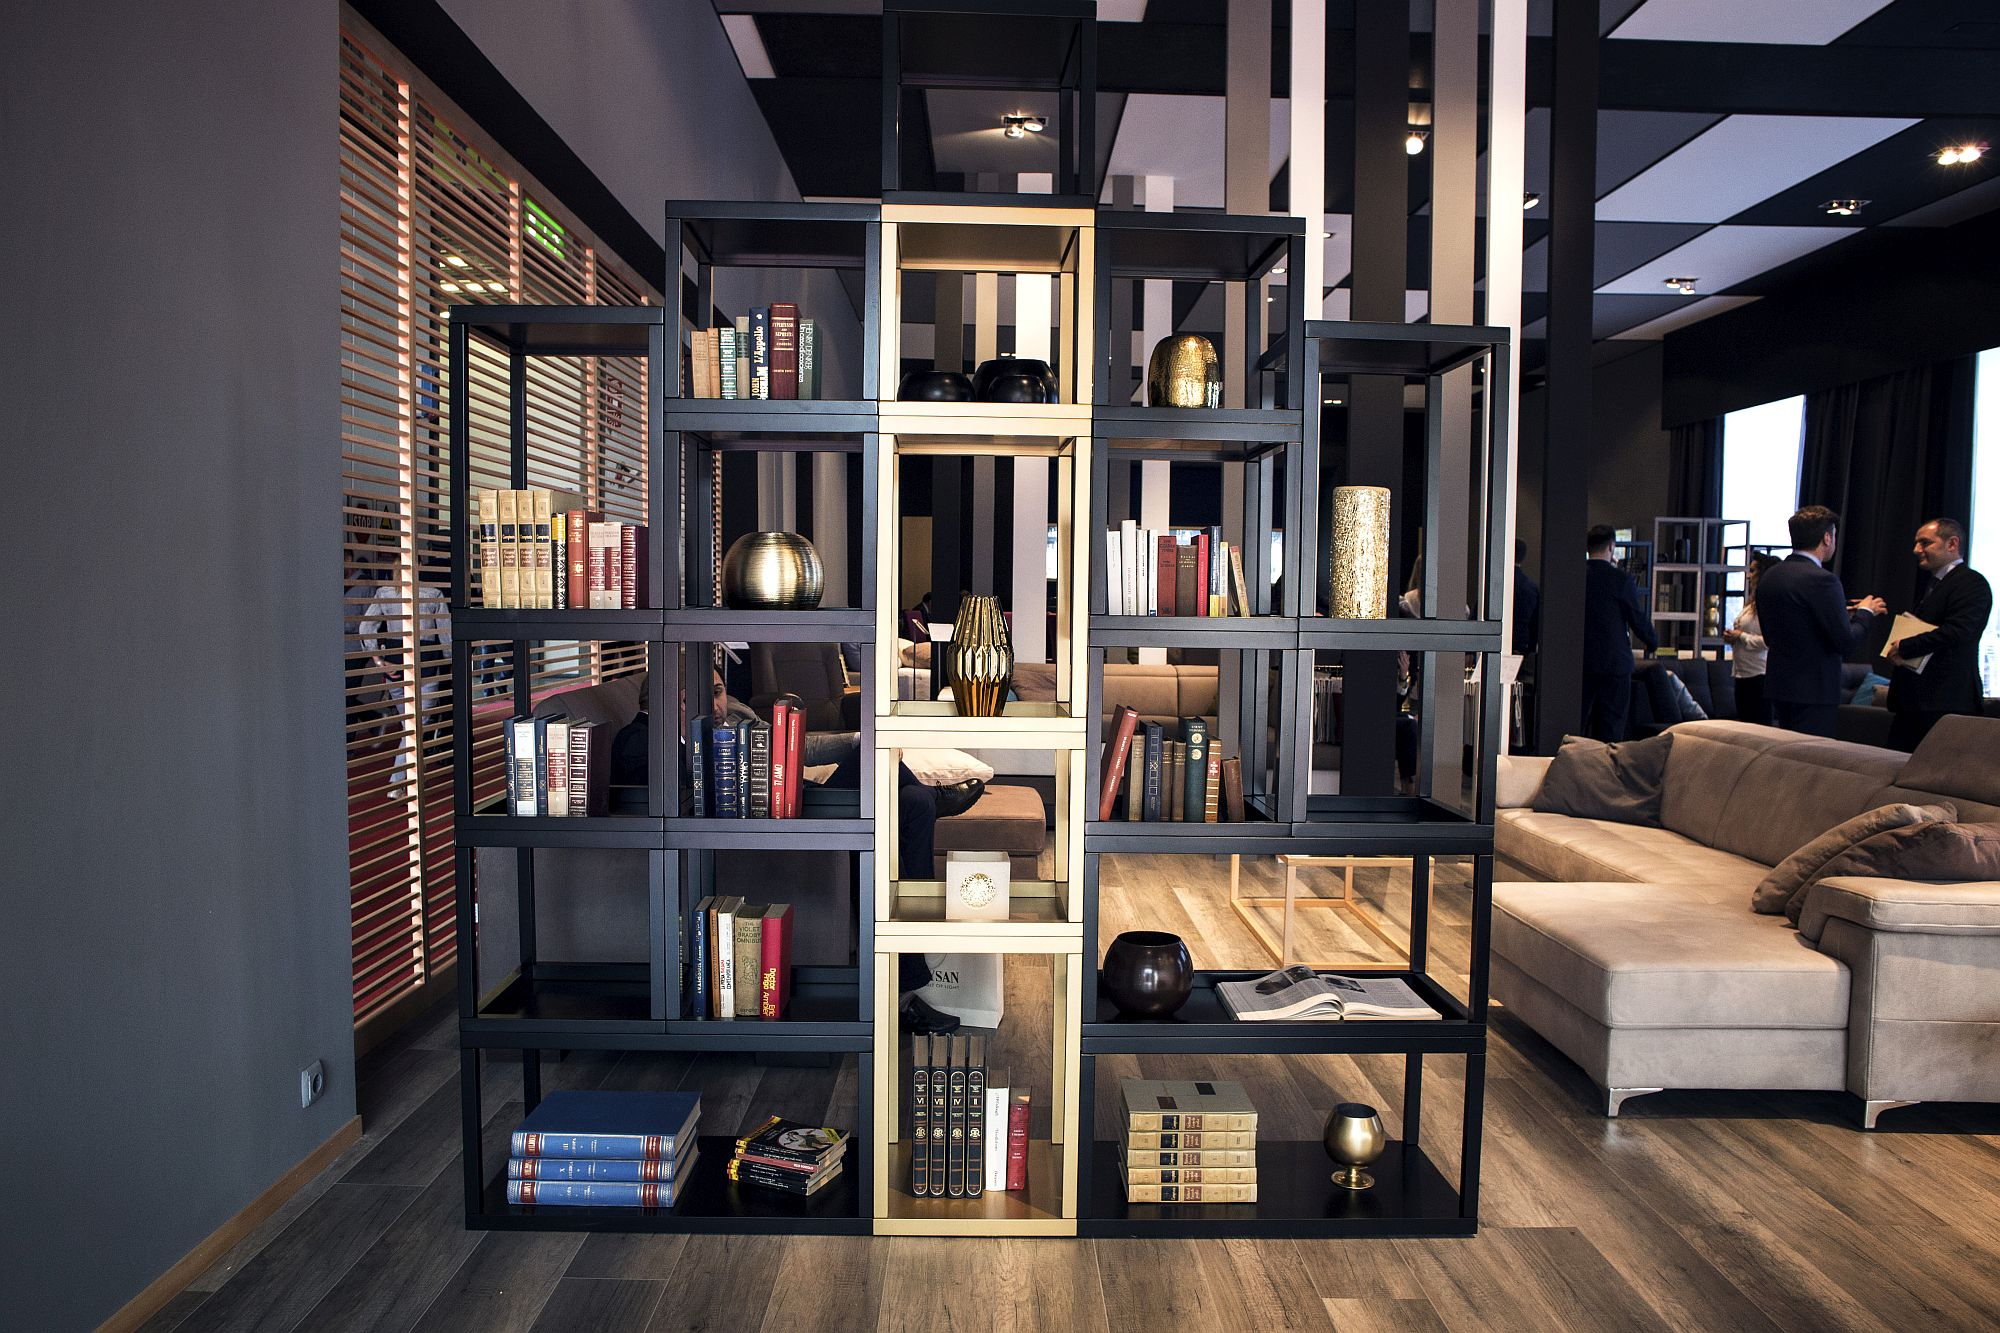 Using the smart bookshelf as a room divider